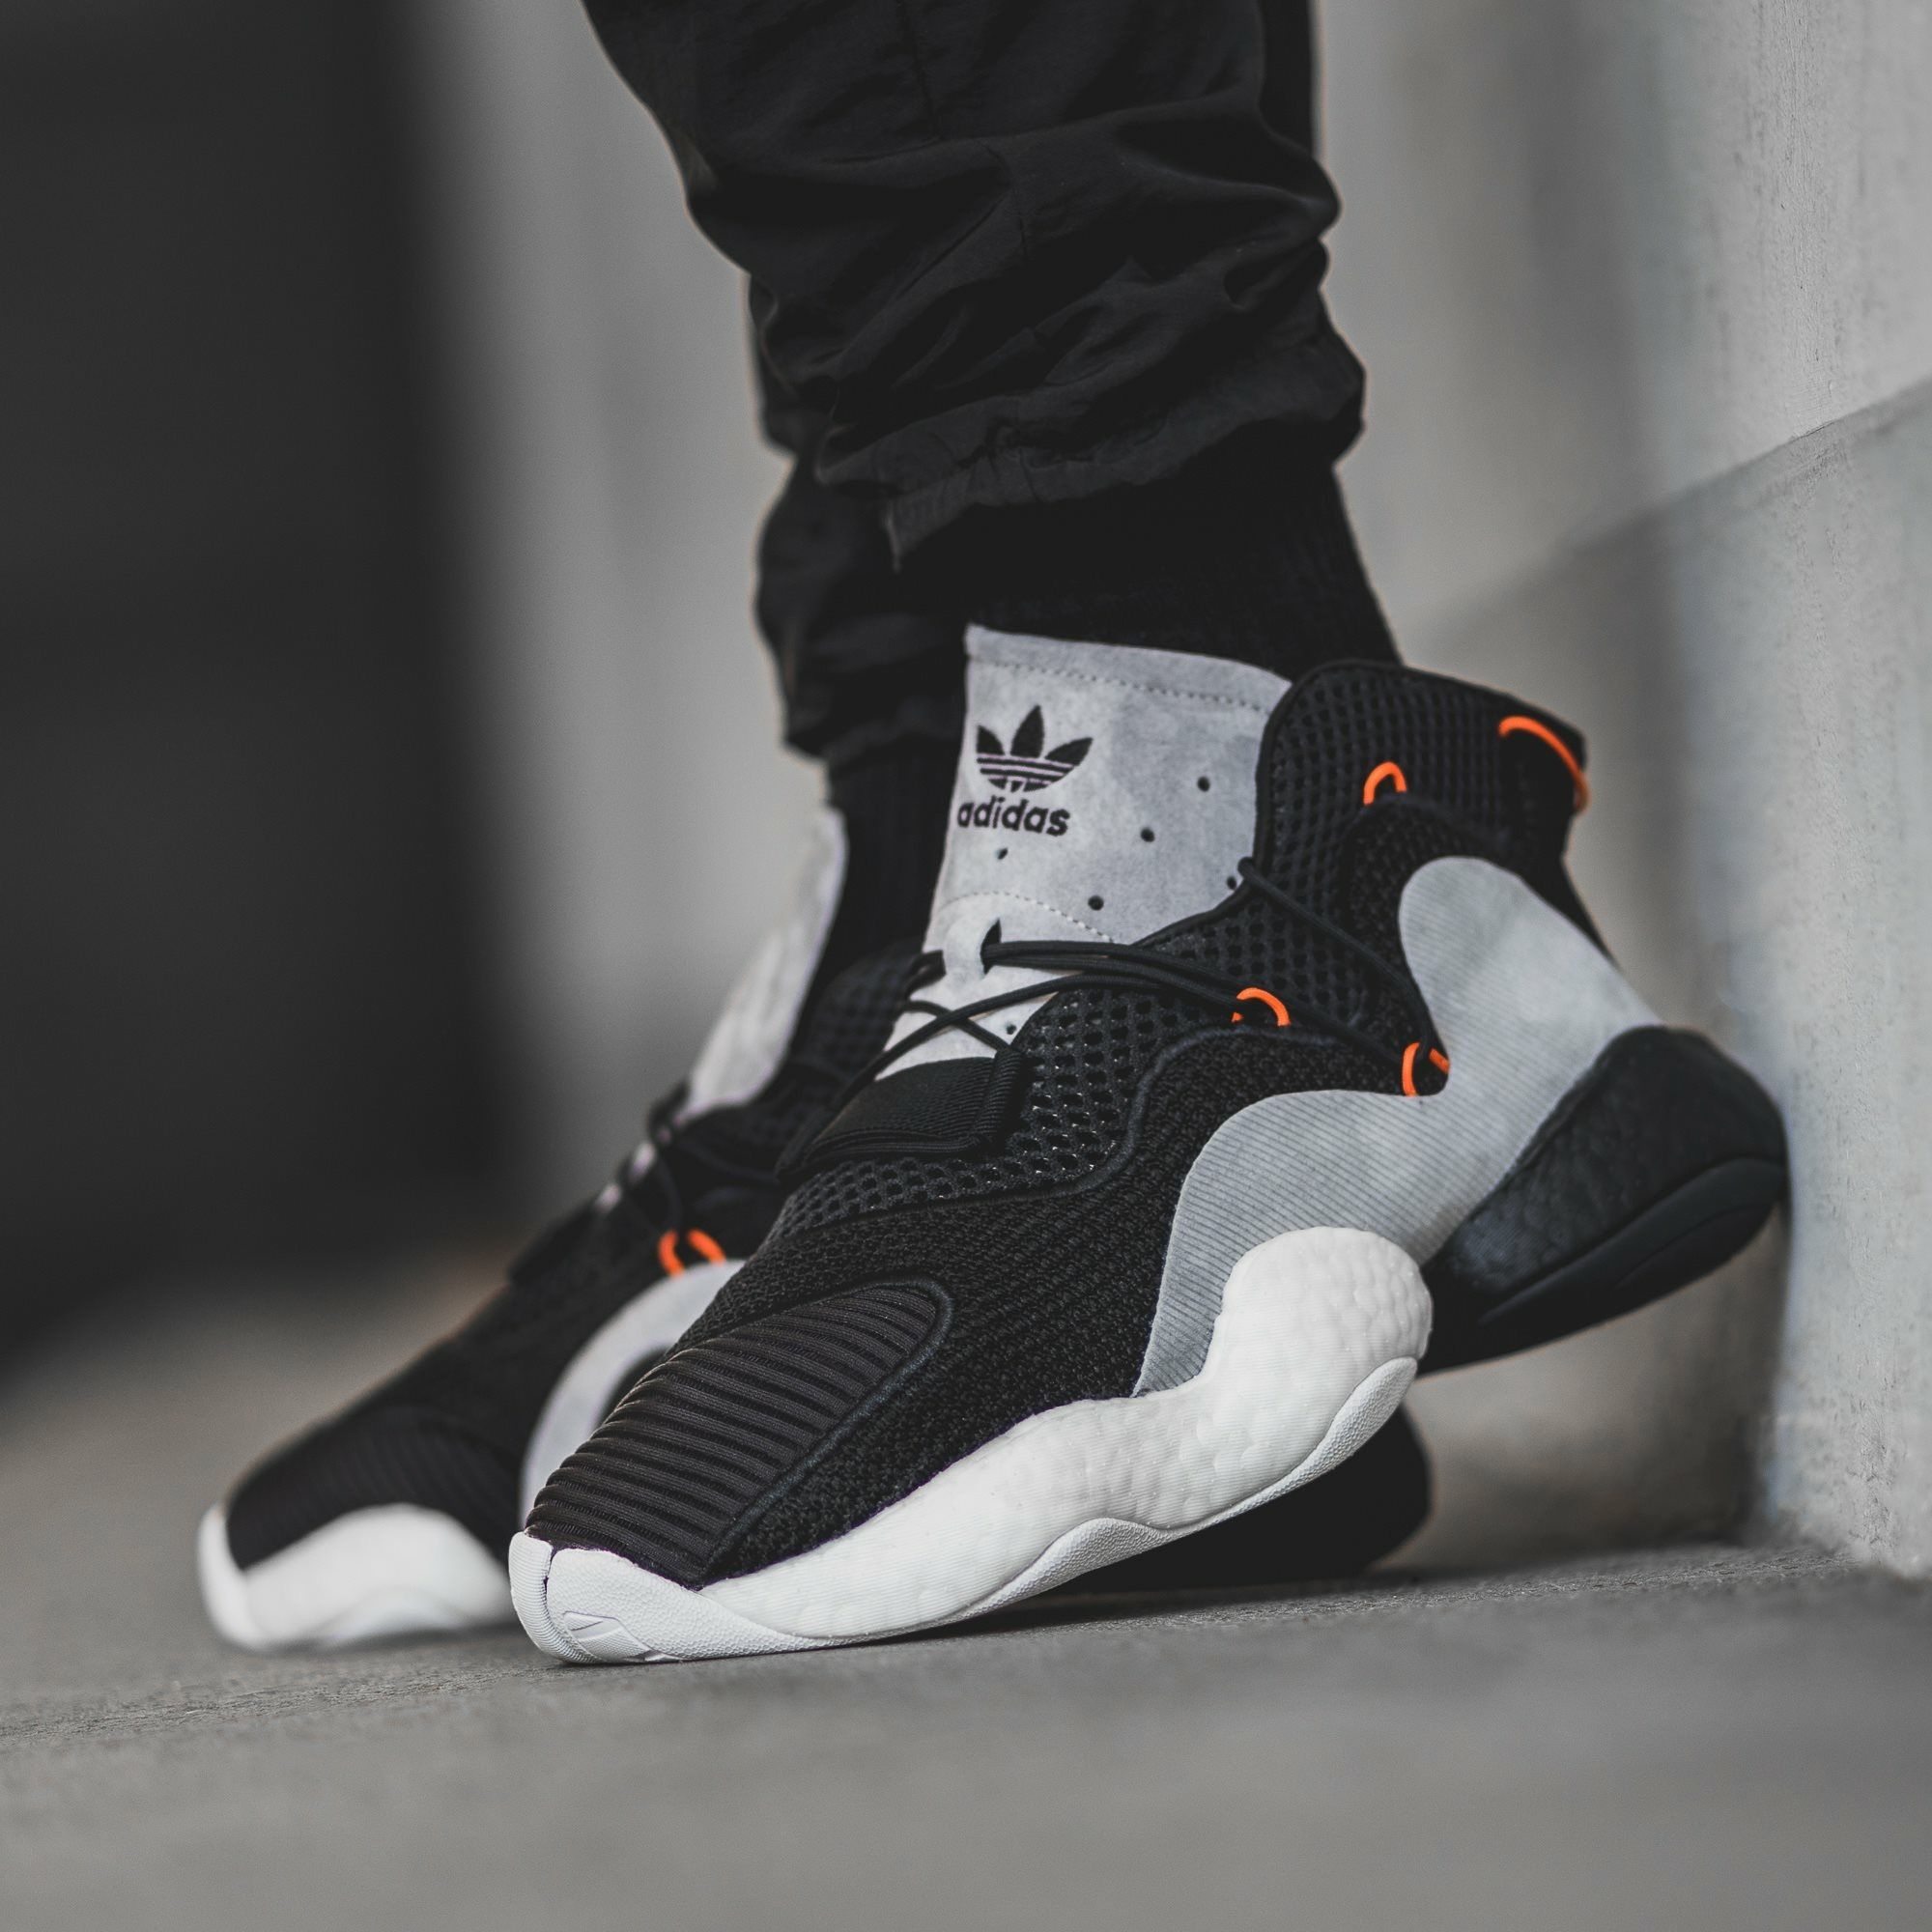 adidas Crazy BYW LVL 1   Sneakers  adidas Crazy in 2019   Pinterest ... da22888d7be